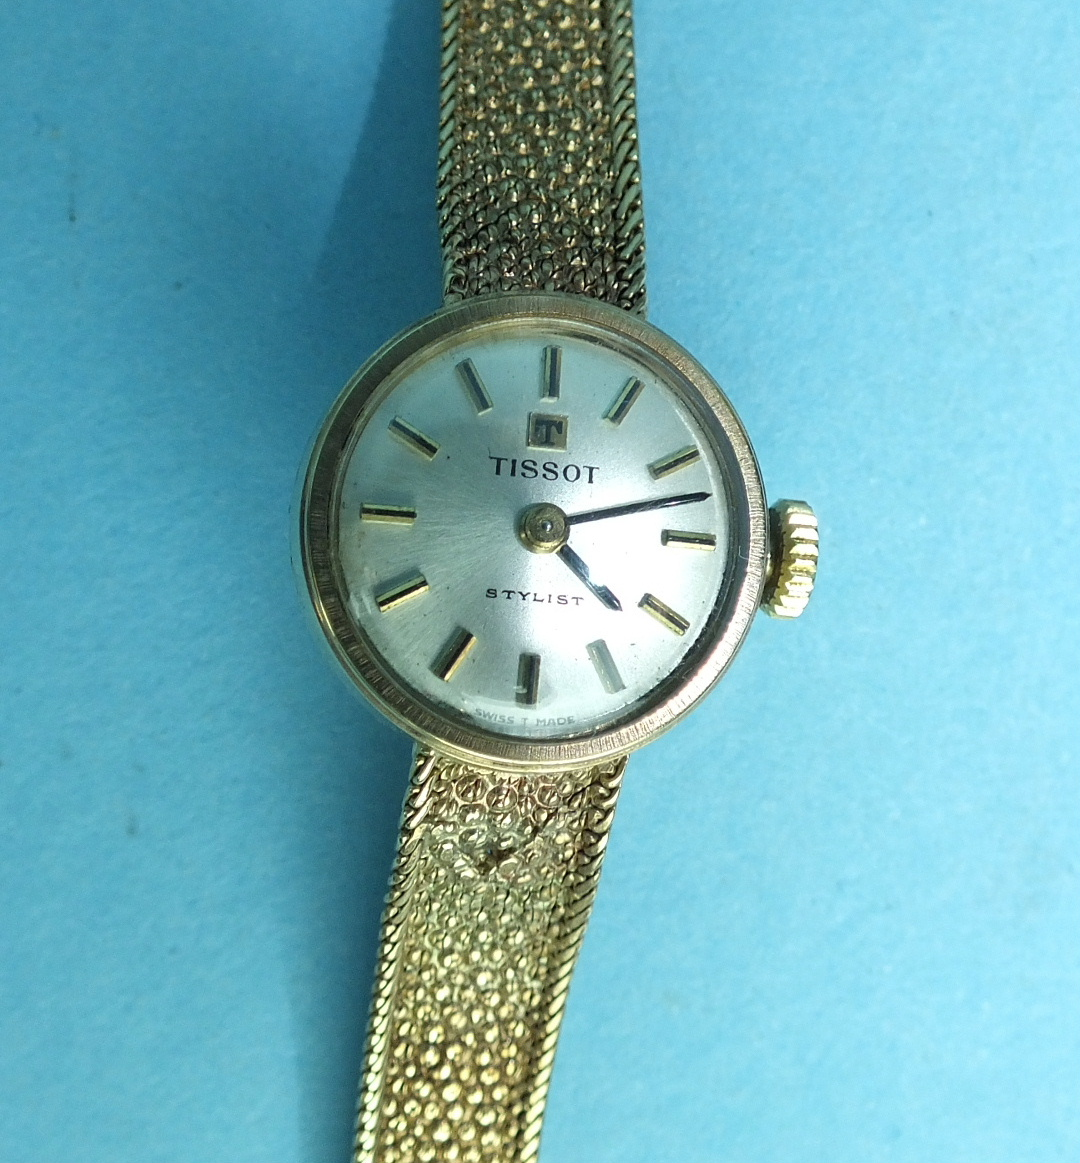 Lot 146 - Tissot, a ladies 'Stylist' 9ct gold wrist watch on gold mesh bracelet, total weight 16.5g, boxed.